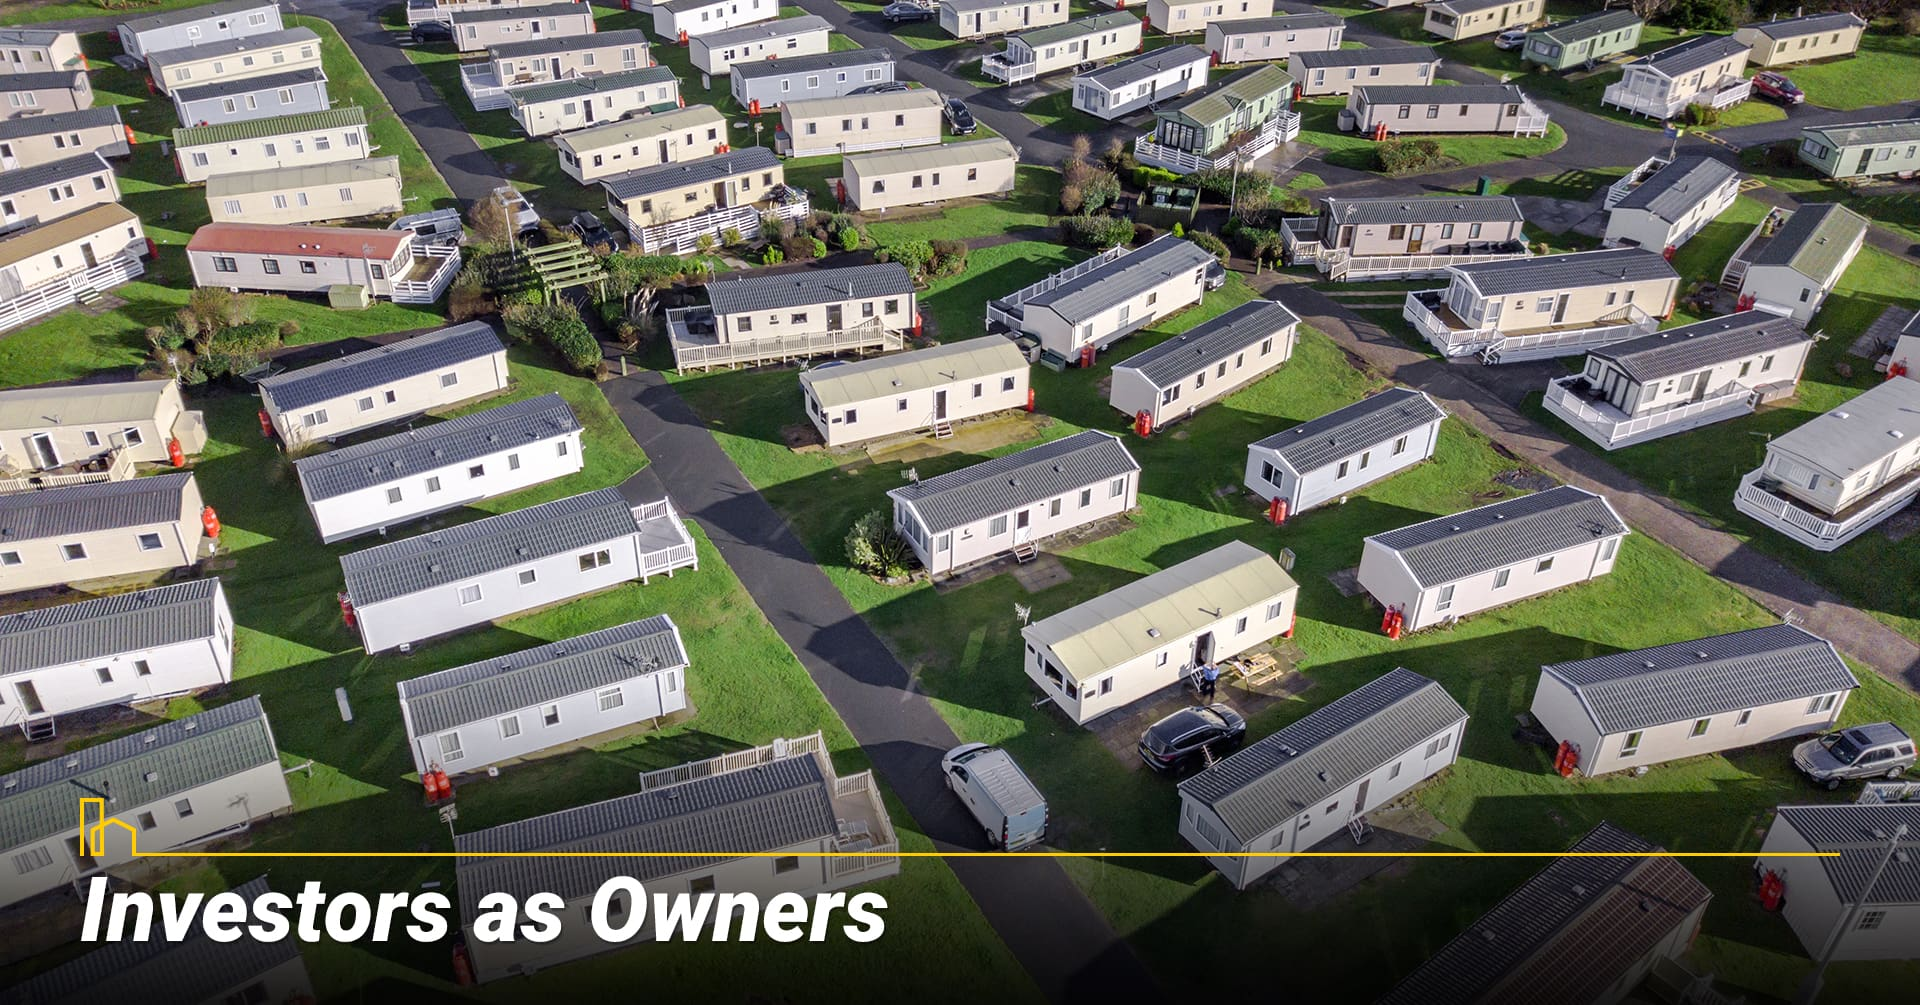 Investors as Owners, opportunity for real estate investment